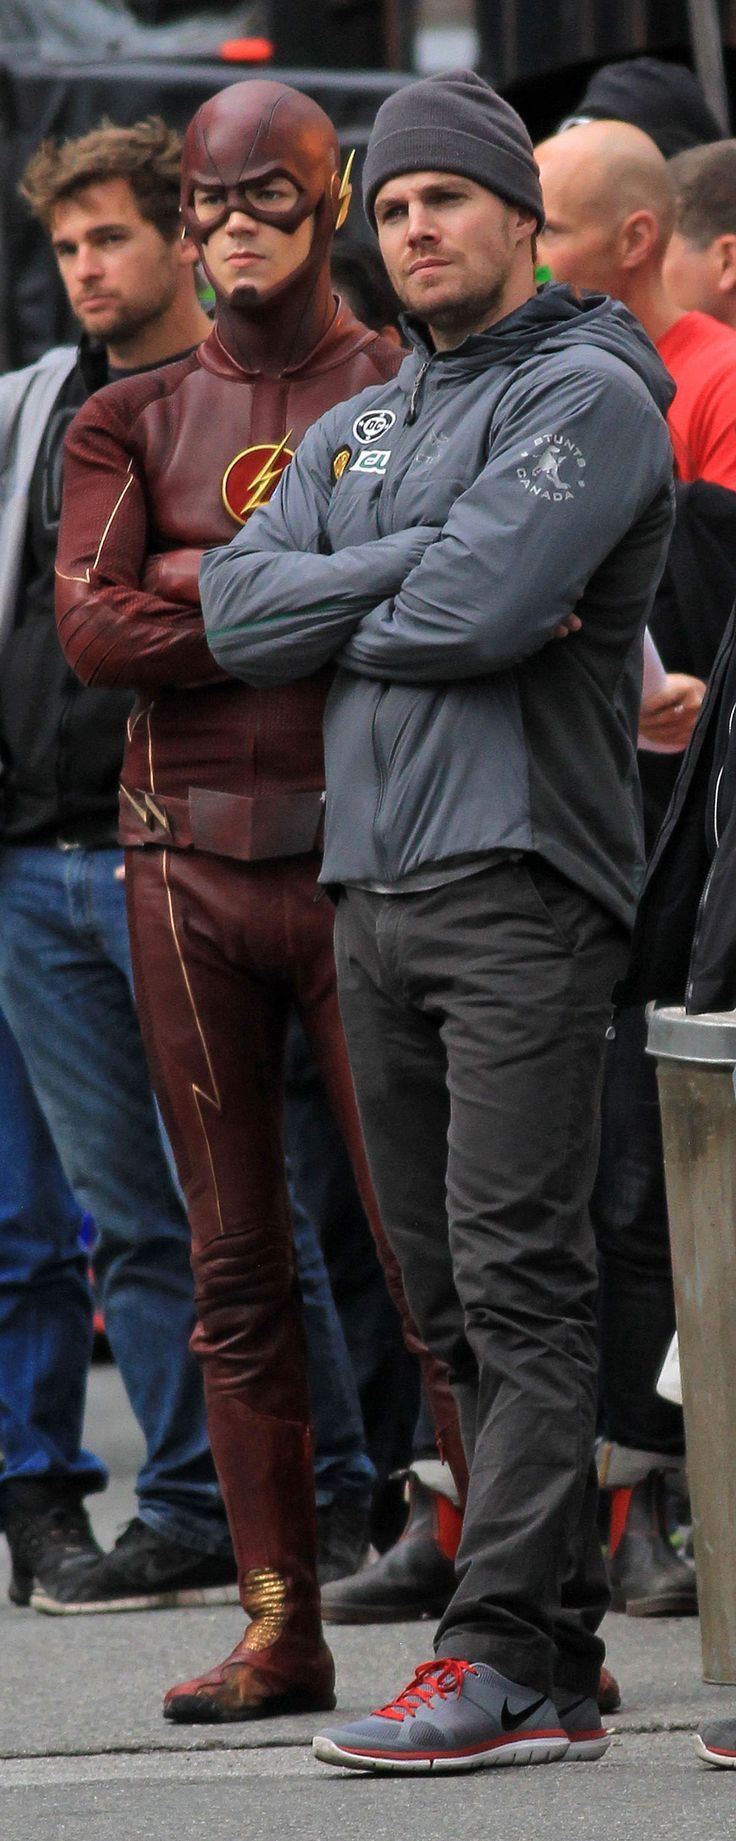 Arrow/The Flash - Grant Gustin & Stephen Amell. I love how they're practically making the same facial expression :)